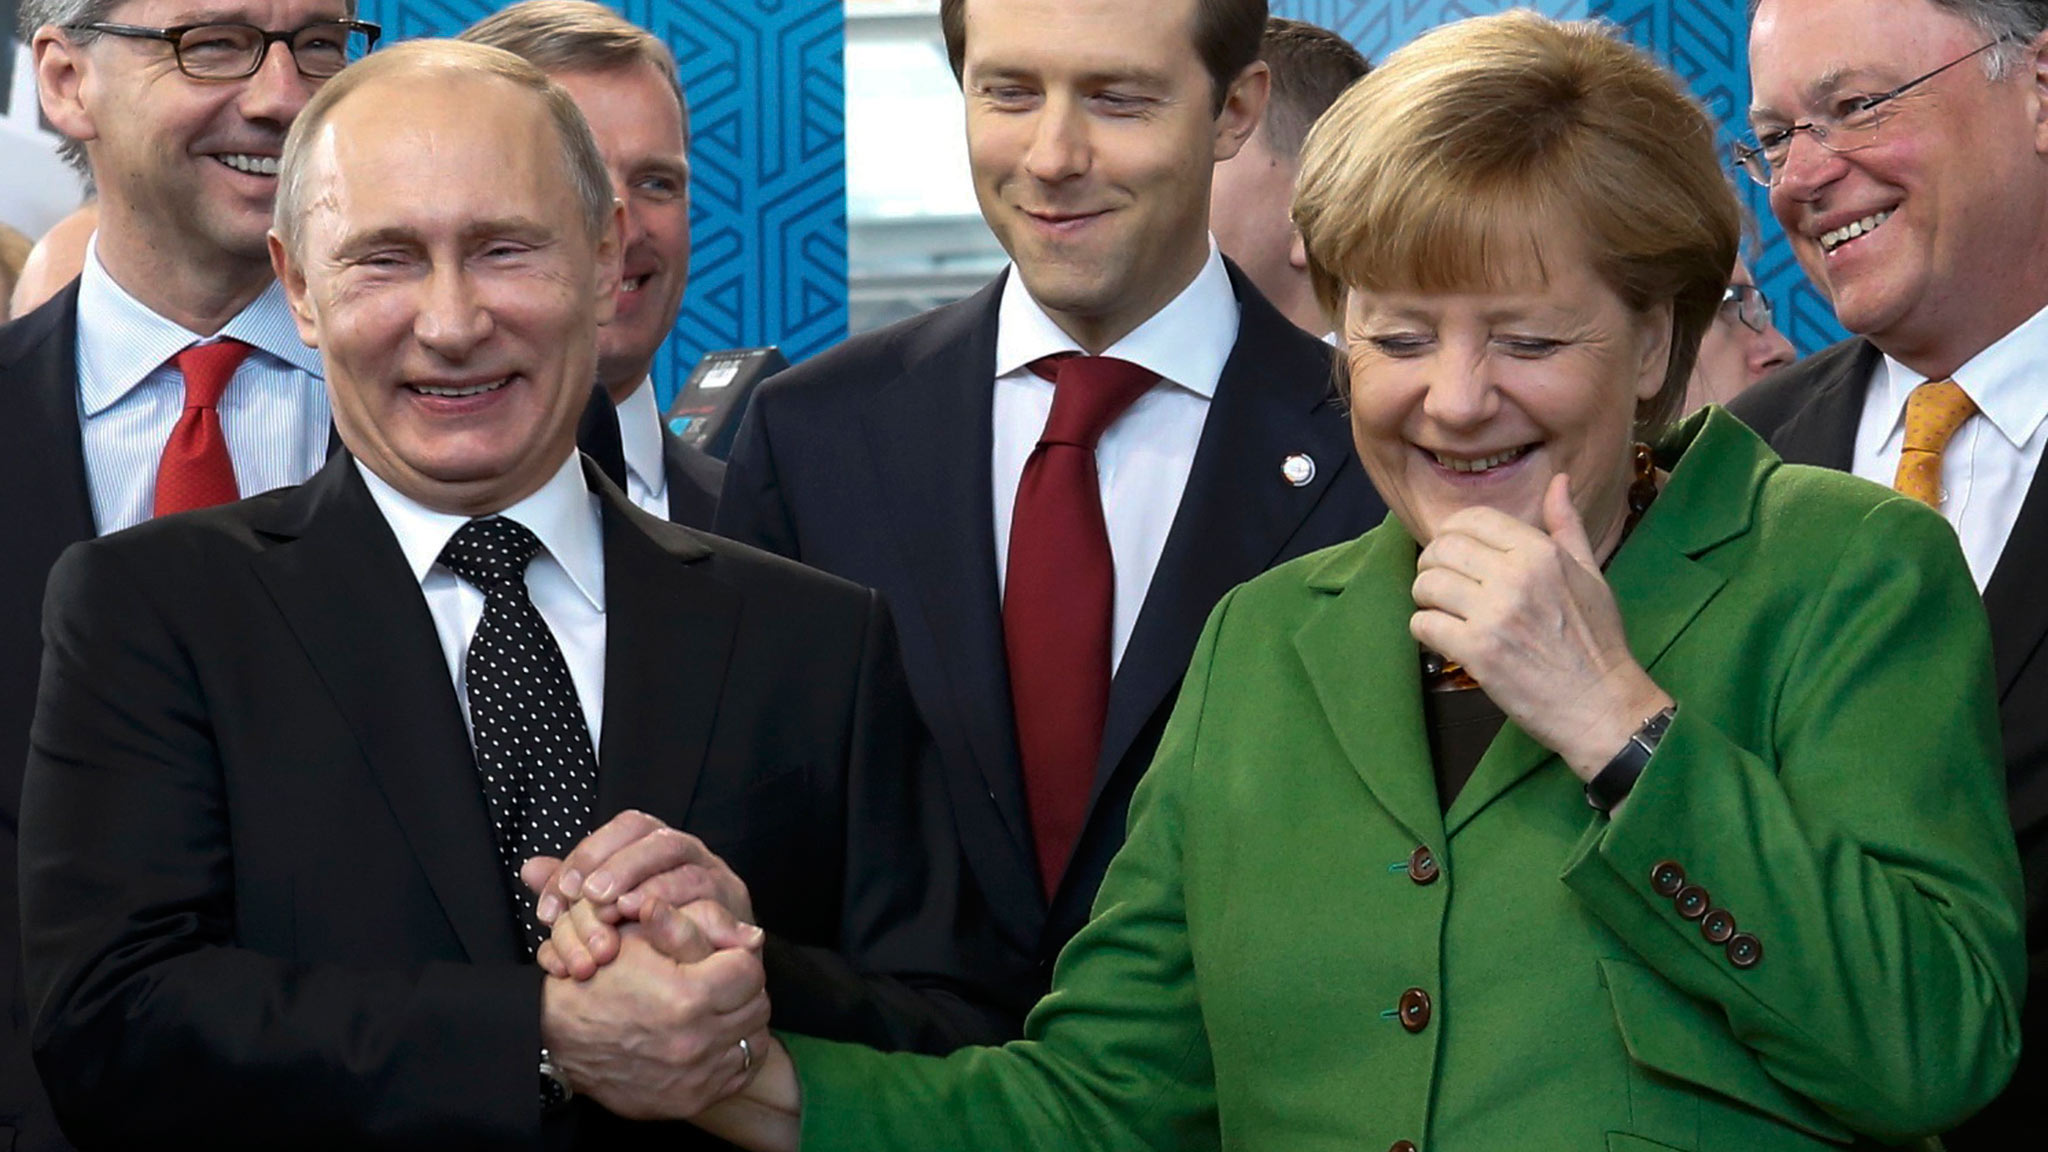 Russian President Vladimir Putin holds the hand of German Chancellor Angela Merkel as they visit the Russian booth during a tour through the Hanover Messe on the first day of the industrial trade fair, in Hanover April 8, 2013.  Russia is the partner country of the Hanover fair 2013, which runs from April 8 -12. REUTERS/Fabrizio Bensch (GERMANY  - Tags: POLITICS BUSINESS)